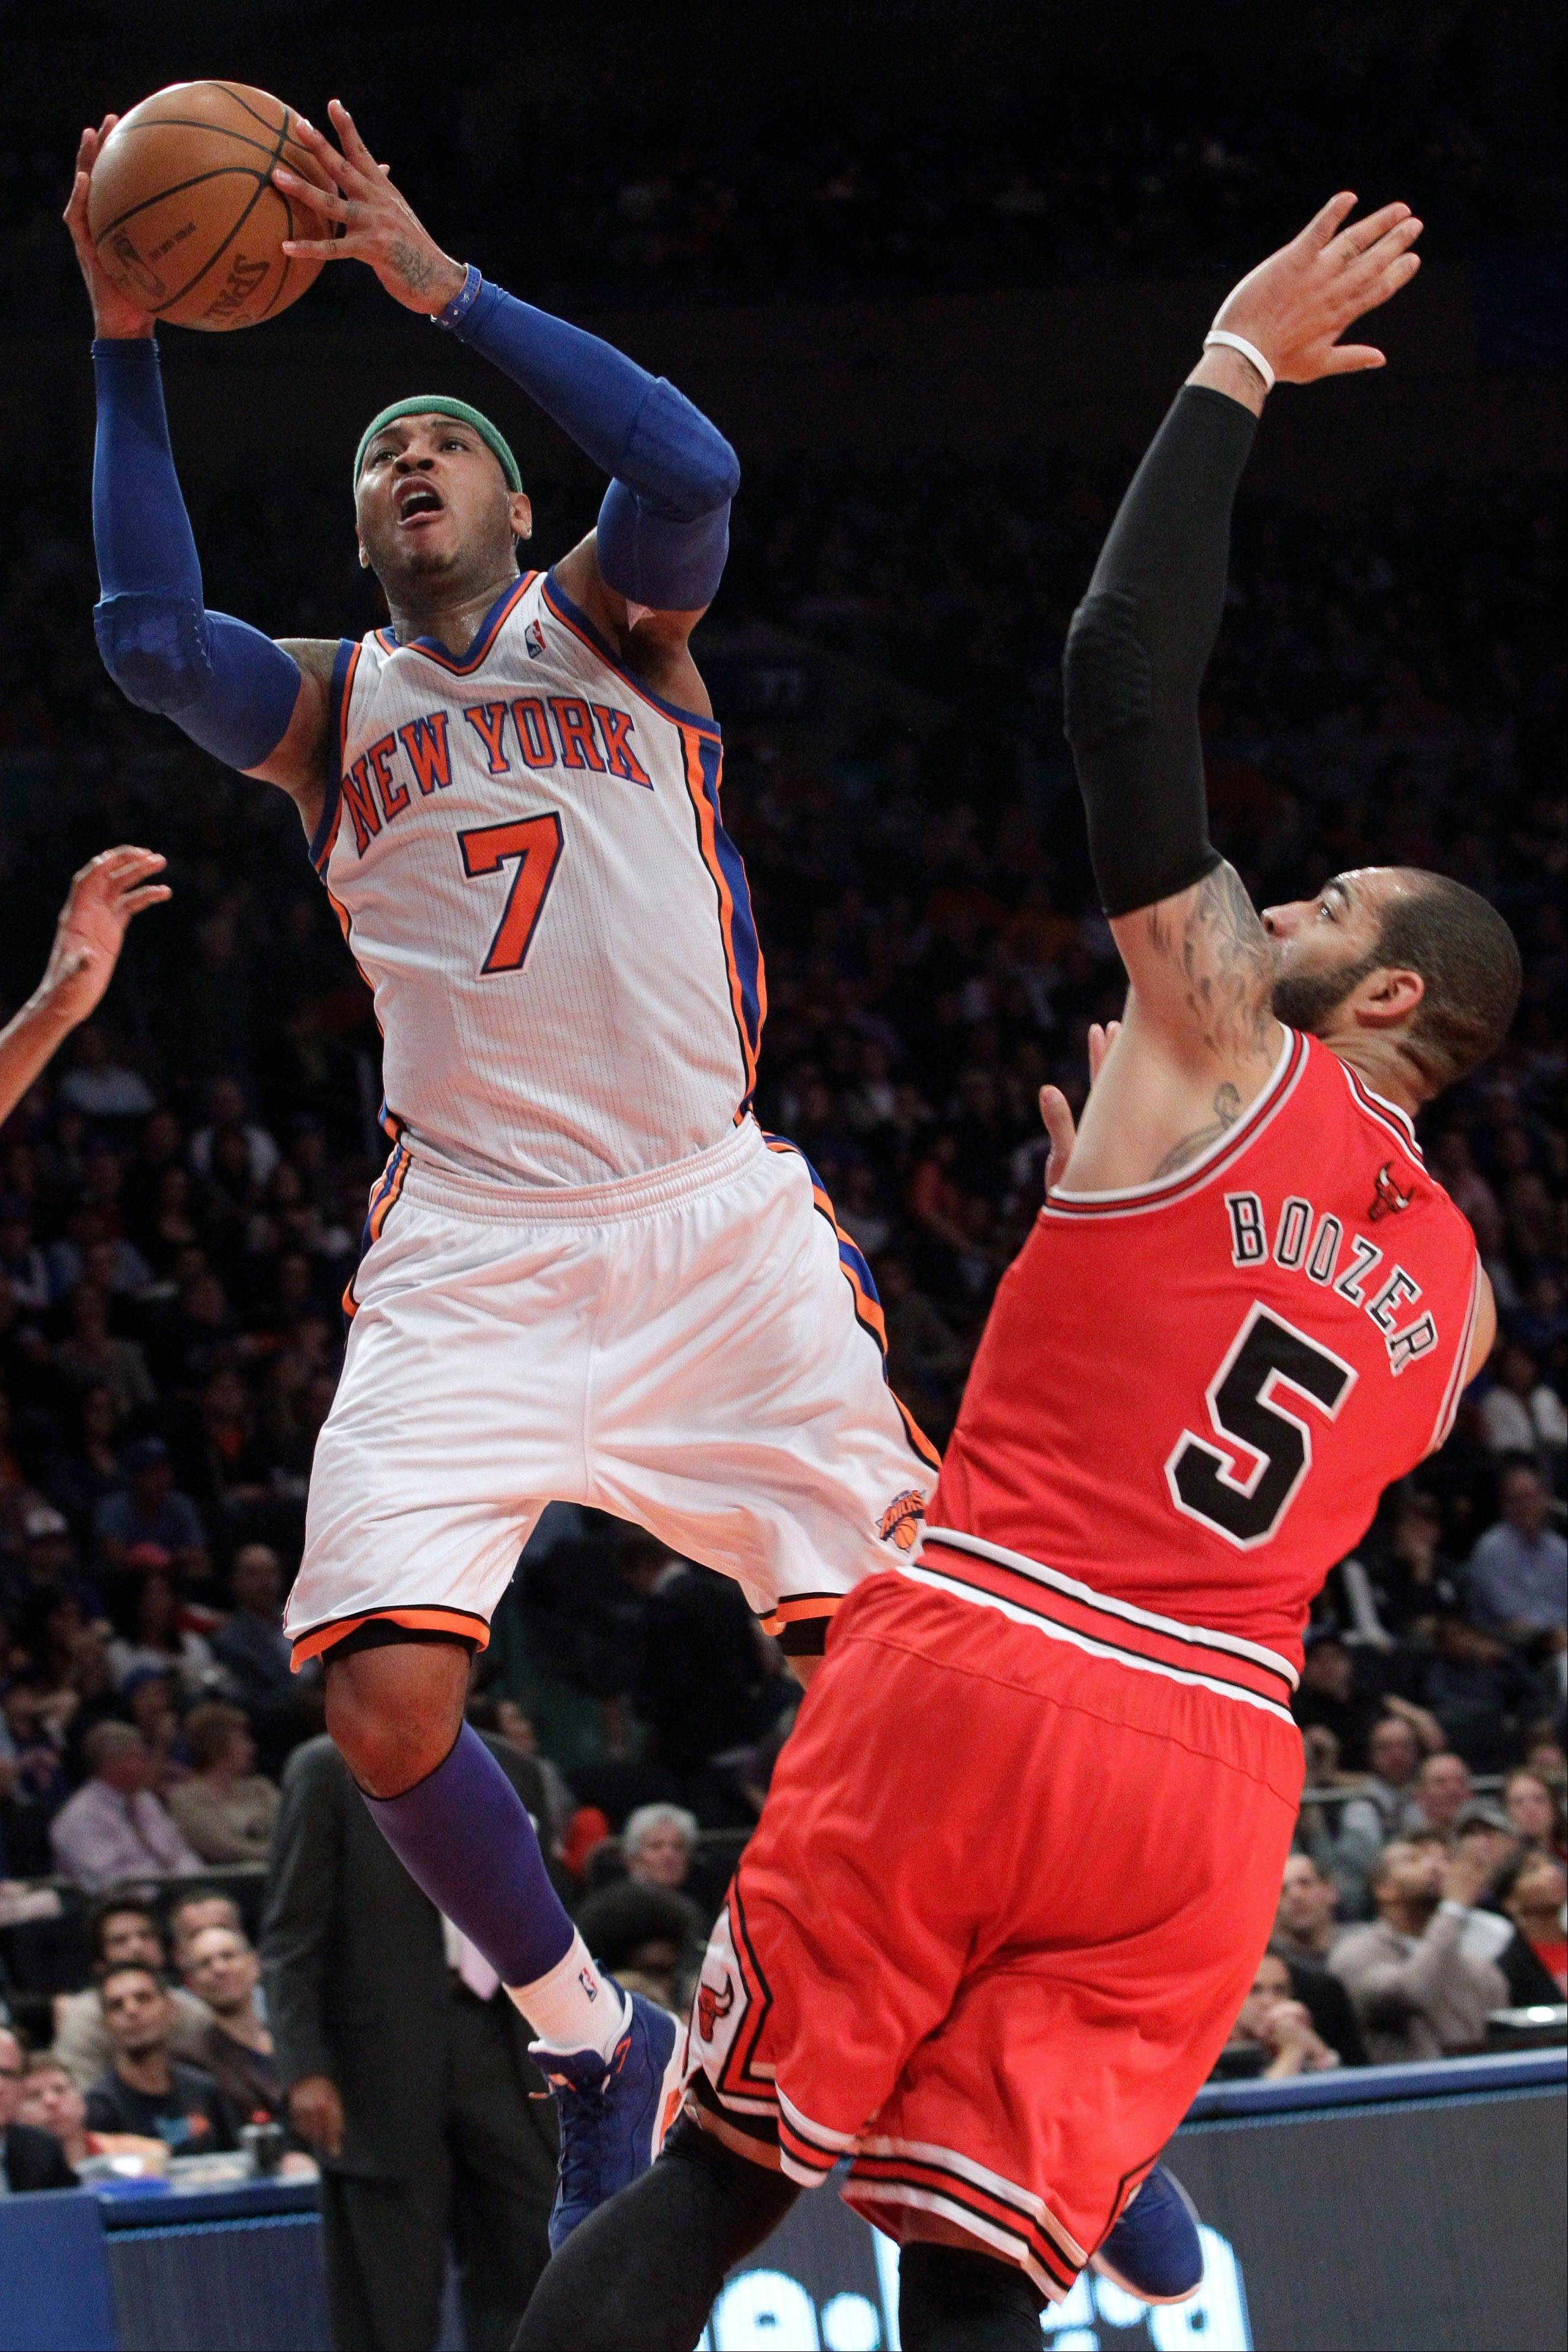 New York Knicks forward Carmelo Anthony goes to the basket past the Bulls' Carlos Boozer Sunday during the first half. Anthony scored 43 points in the Knicks' win.